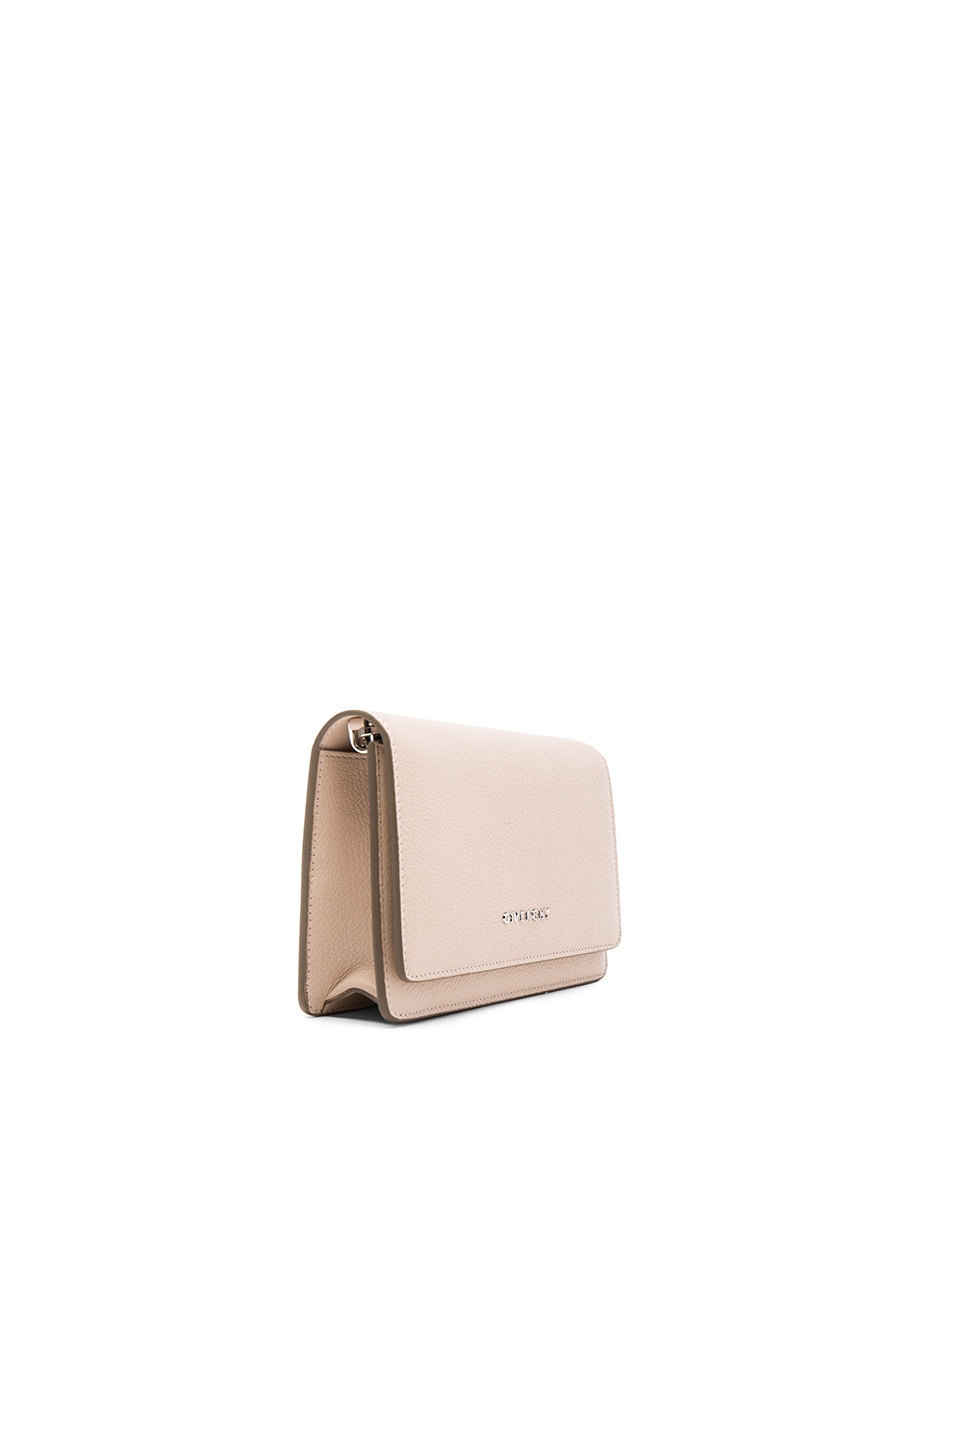 Image 4 of Givenchy Pandora Chain Wallet in Nude Pink